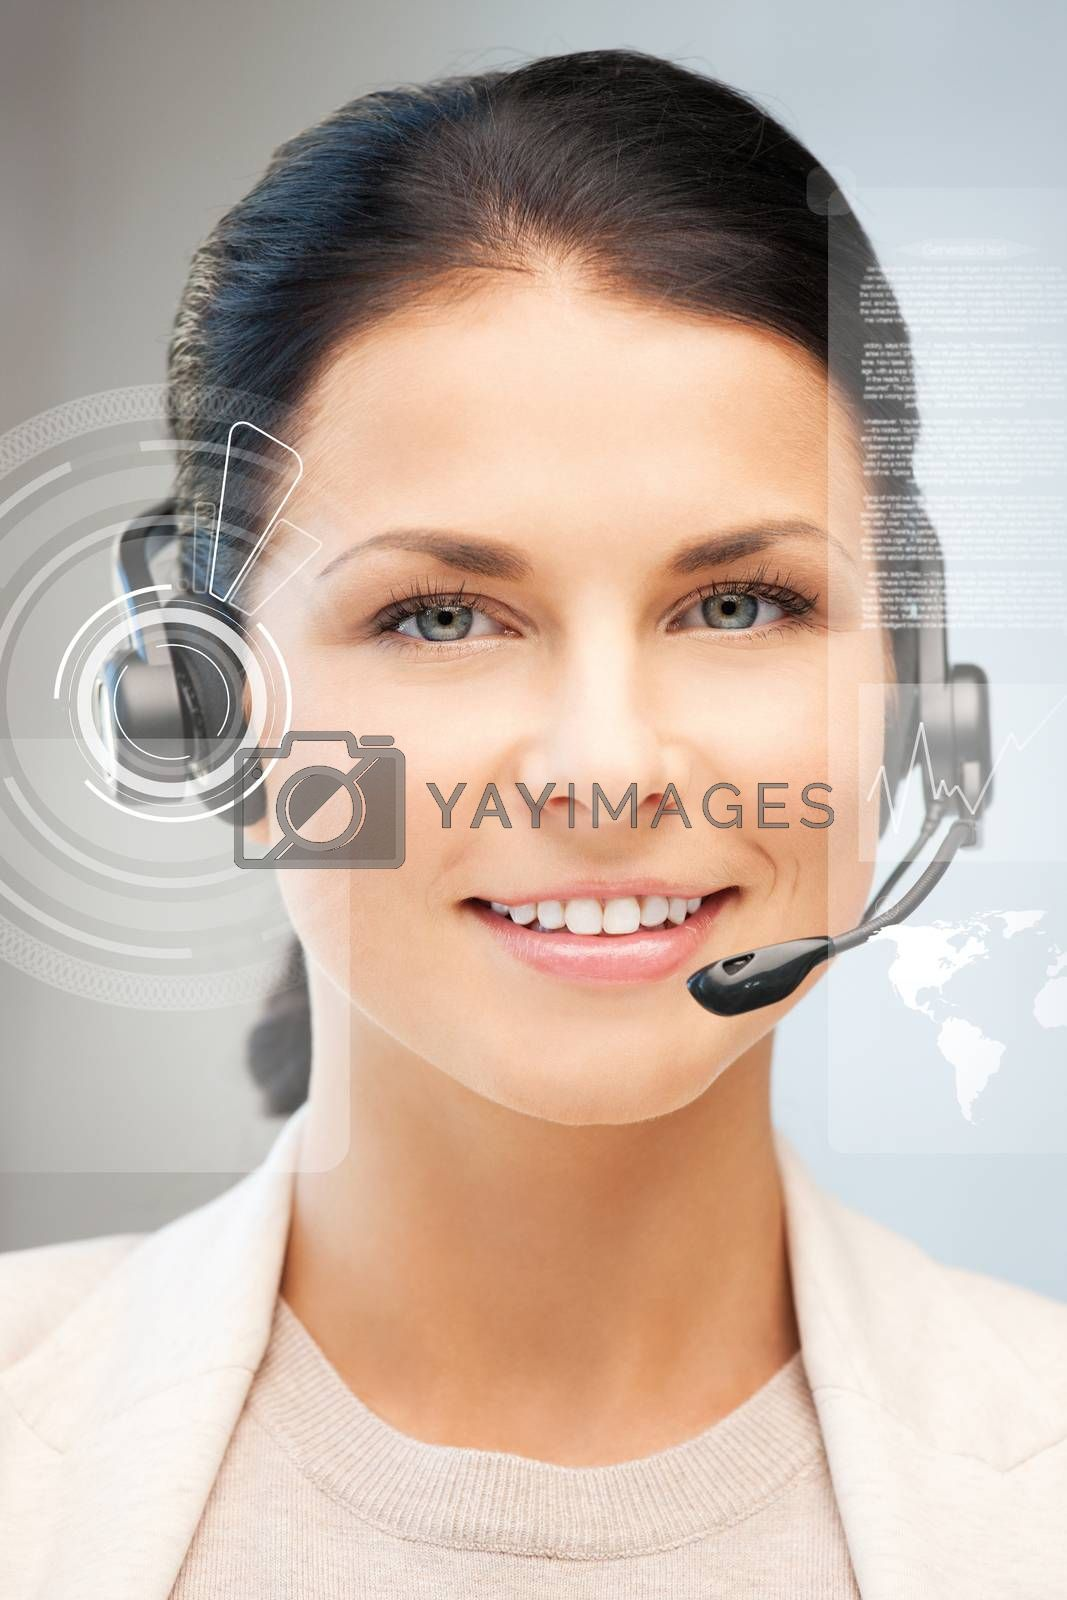 futuristic female helpline operator by dolgachov